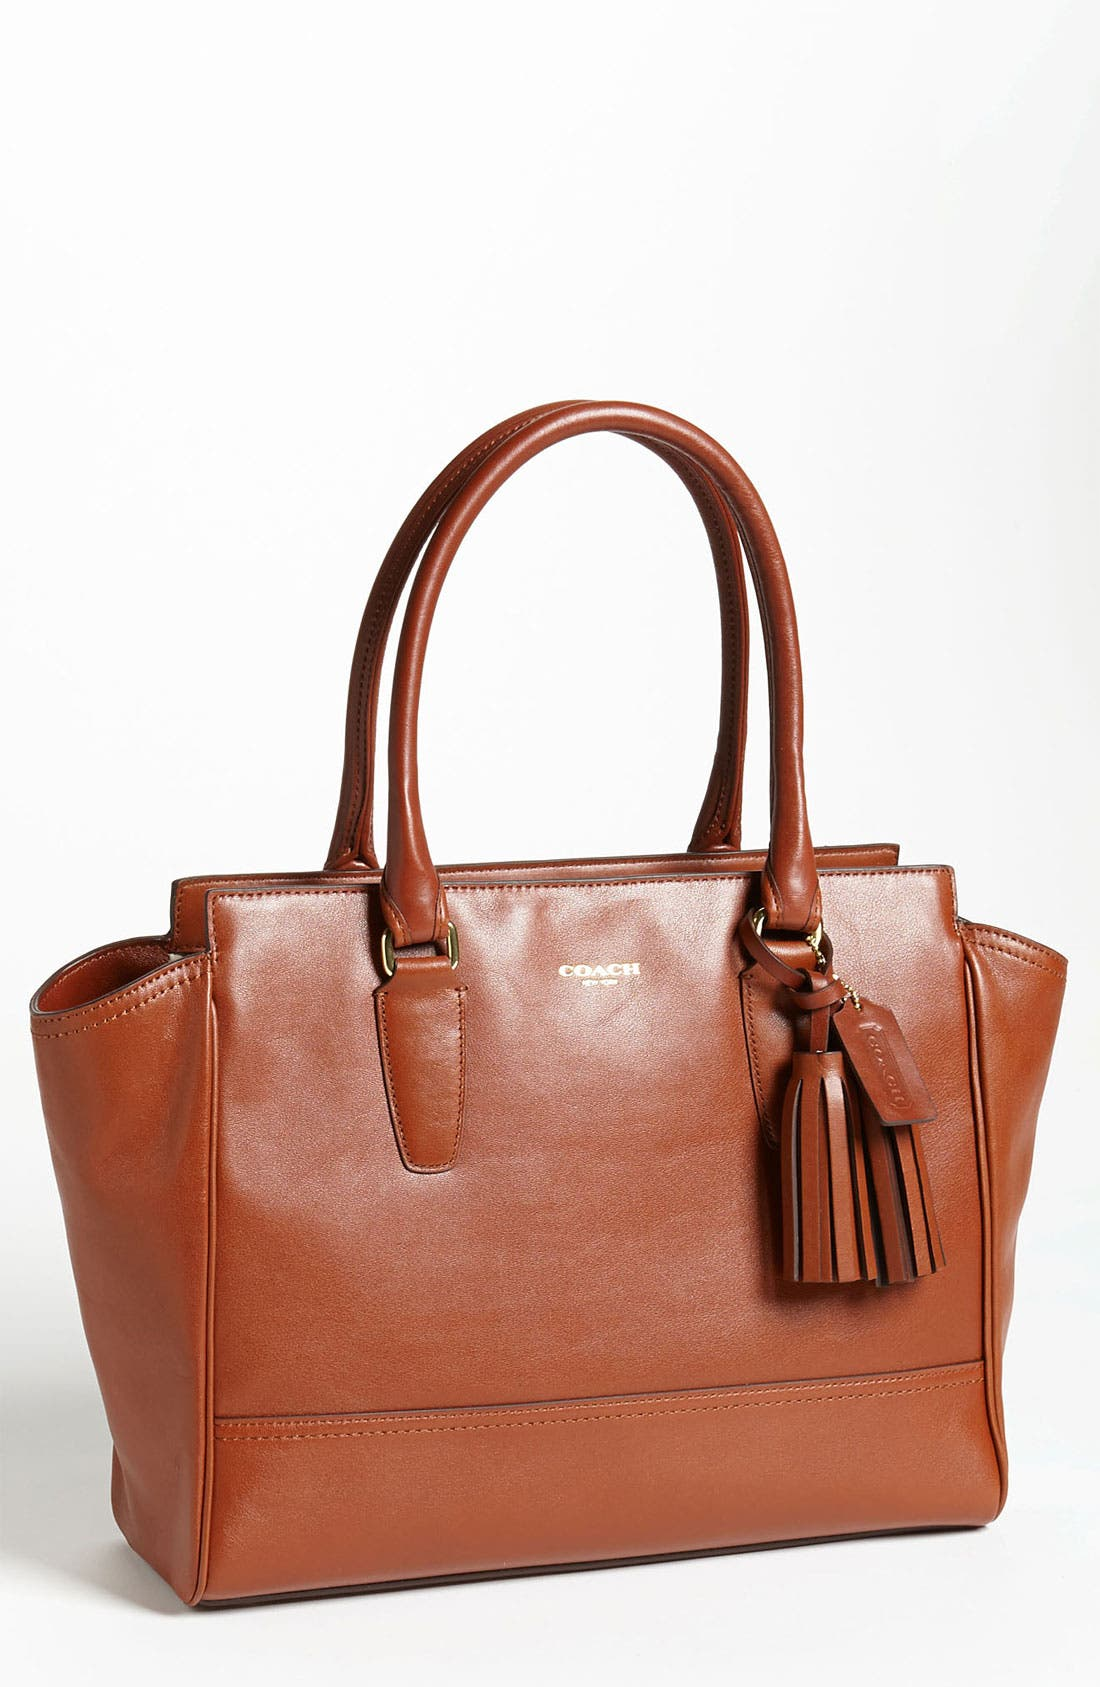 Main Image - COACH 'Legacy Candace - Medium' Shoulder Bag